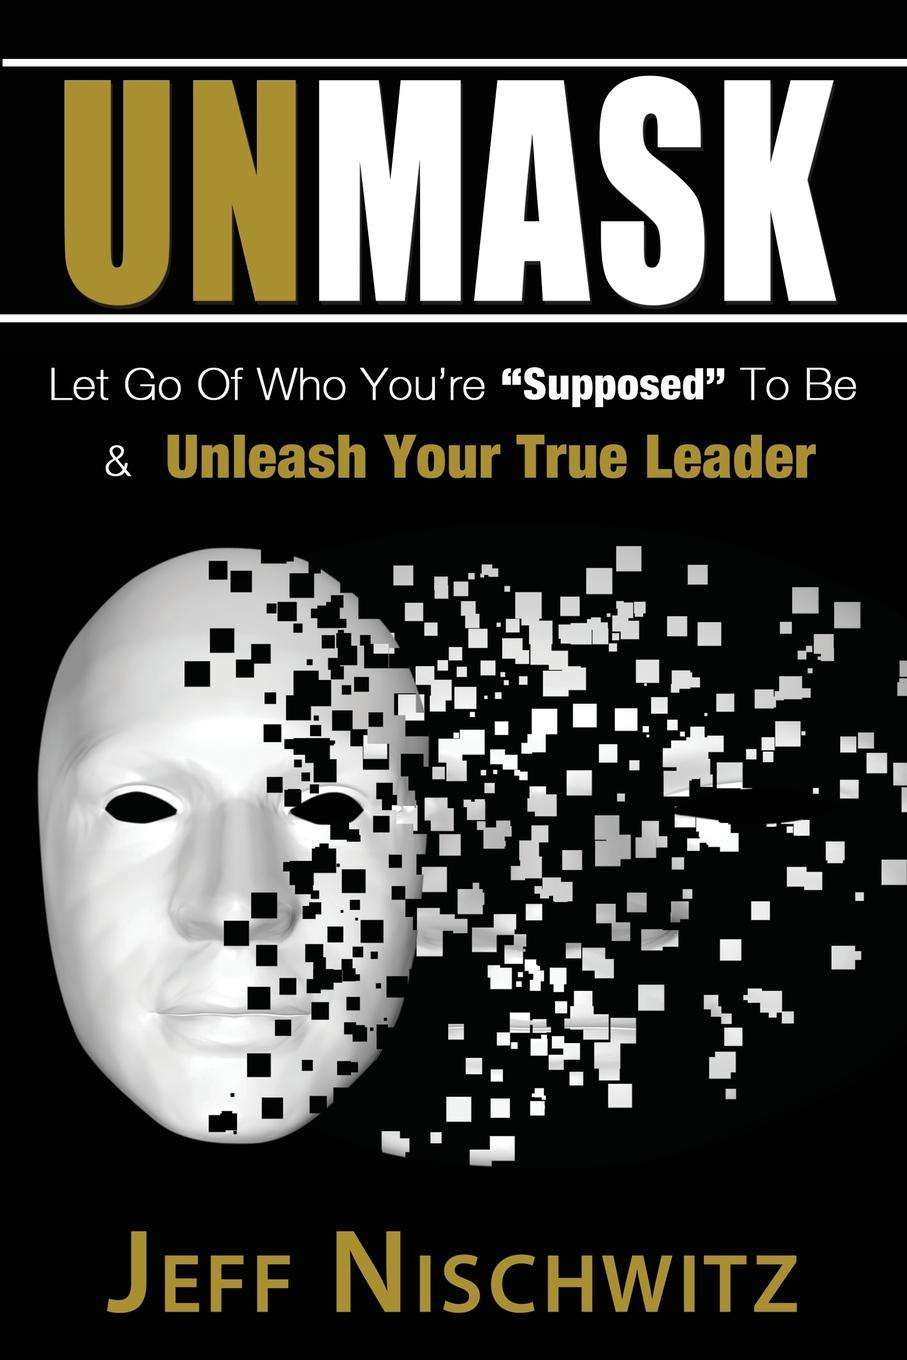 Jeff Nischwitz Unmask. Let Go of Who You.re Supposed To Be . Unleash Your True Leader thomas kolditz a in extremis leadership leading as if your life depended on it